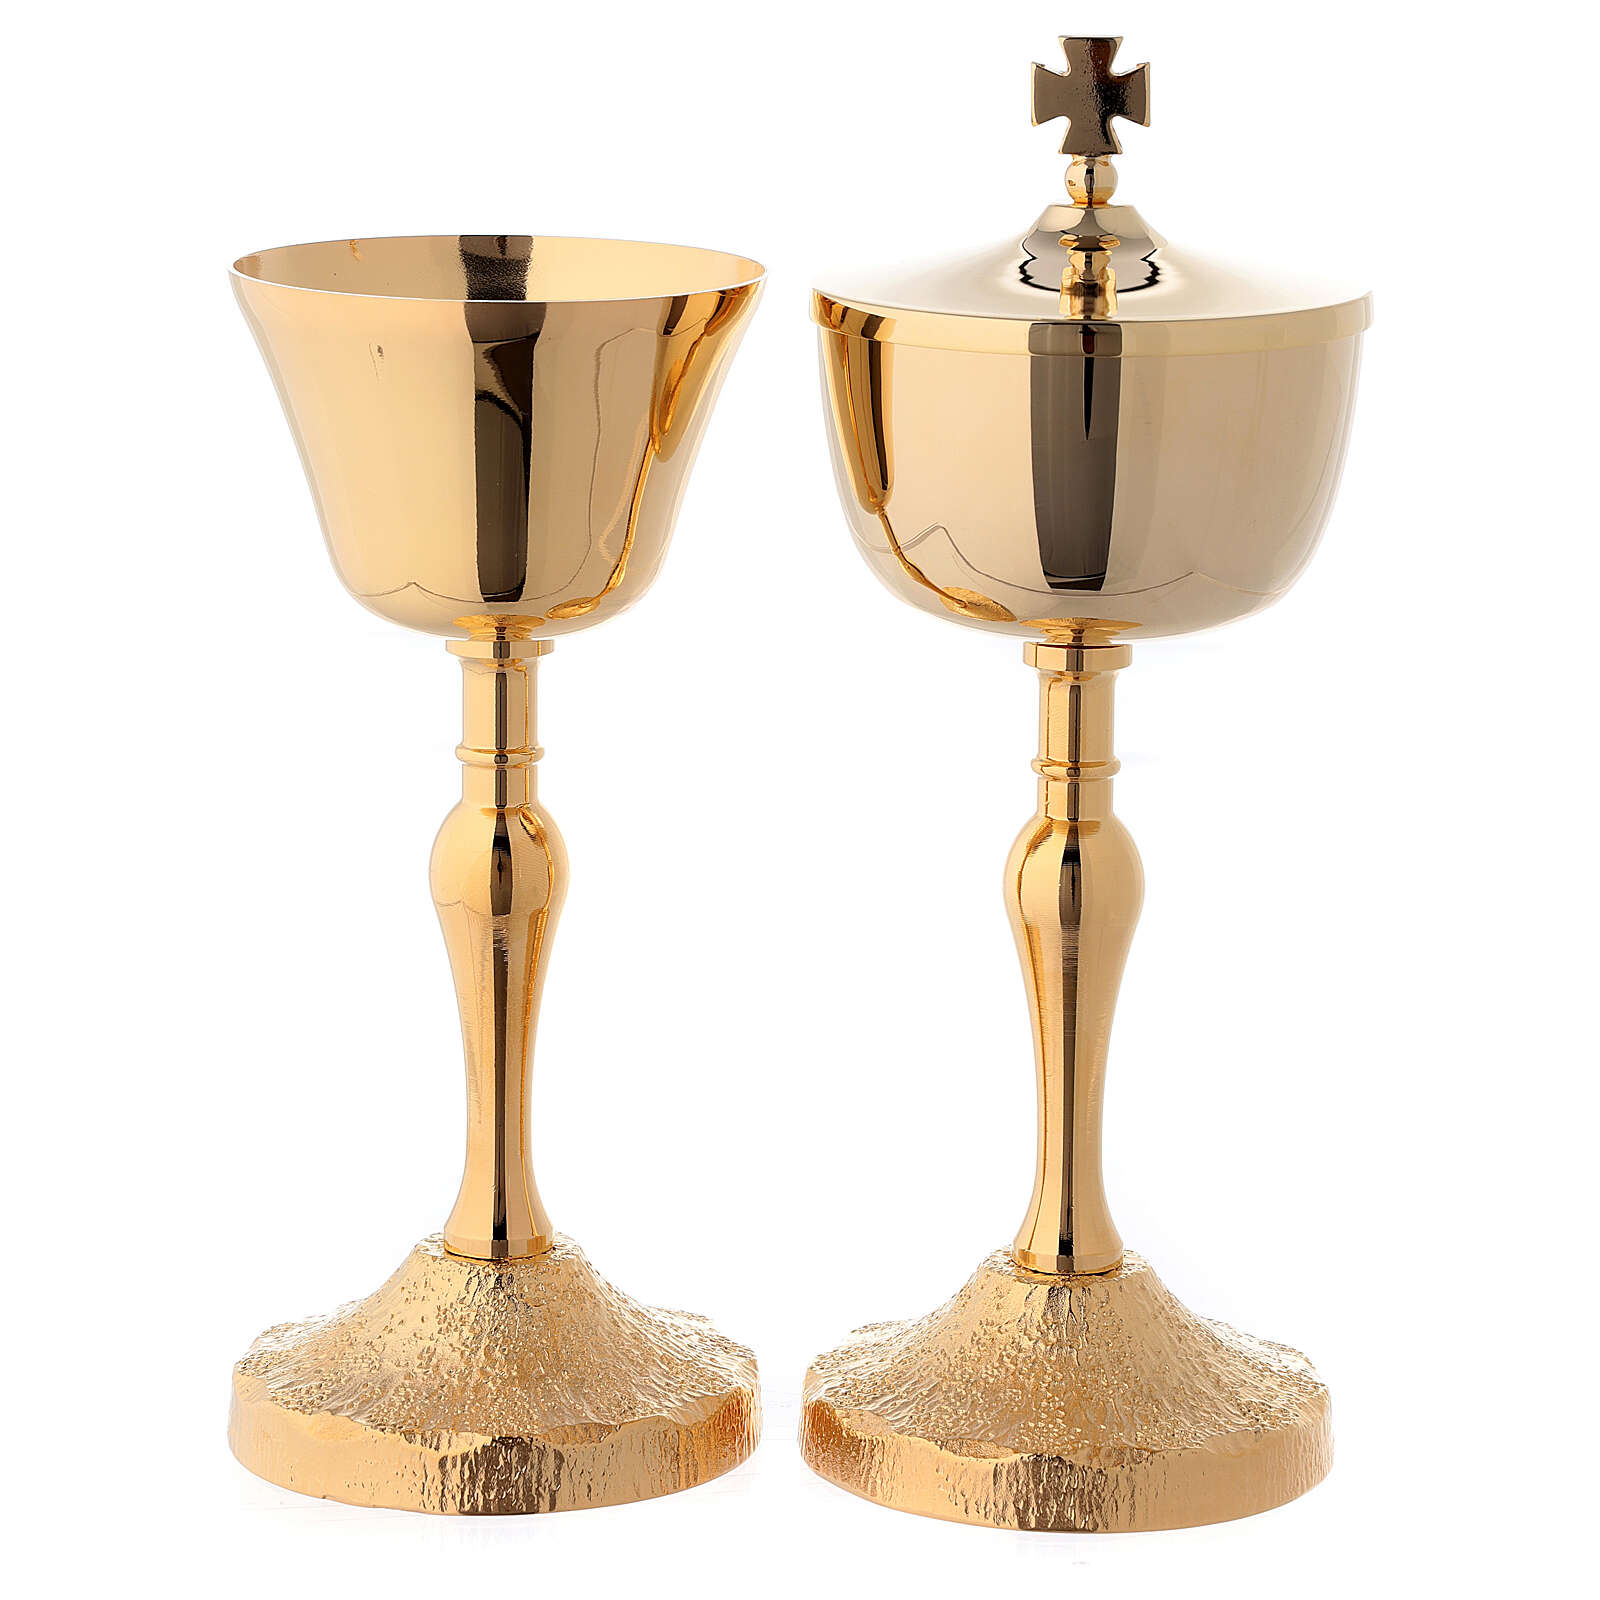 Chalice and ciborium with base and node in Medieval style 24-karat gold plated brass 4